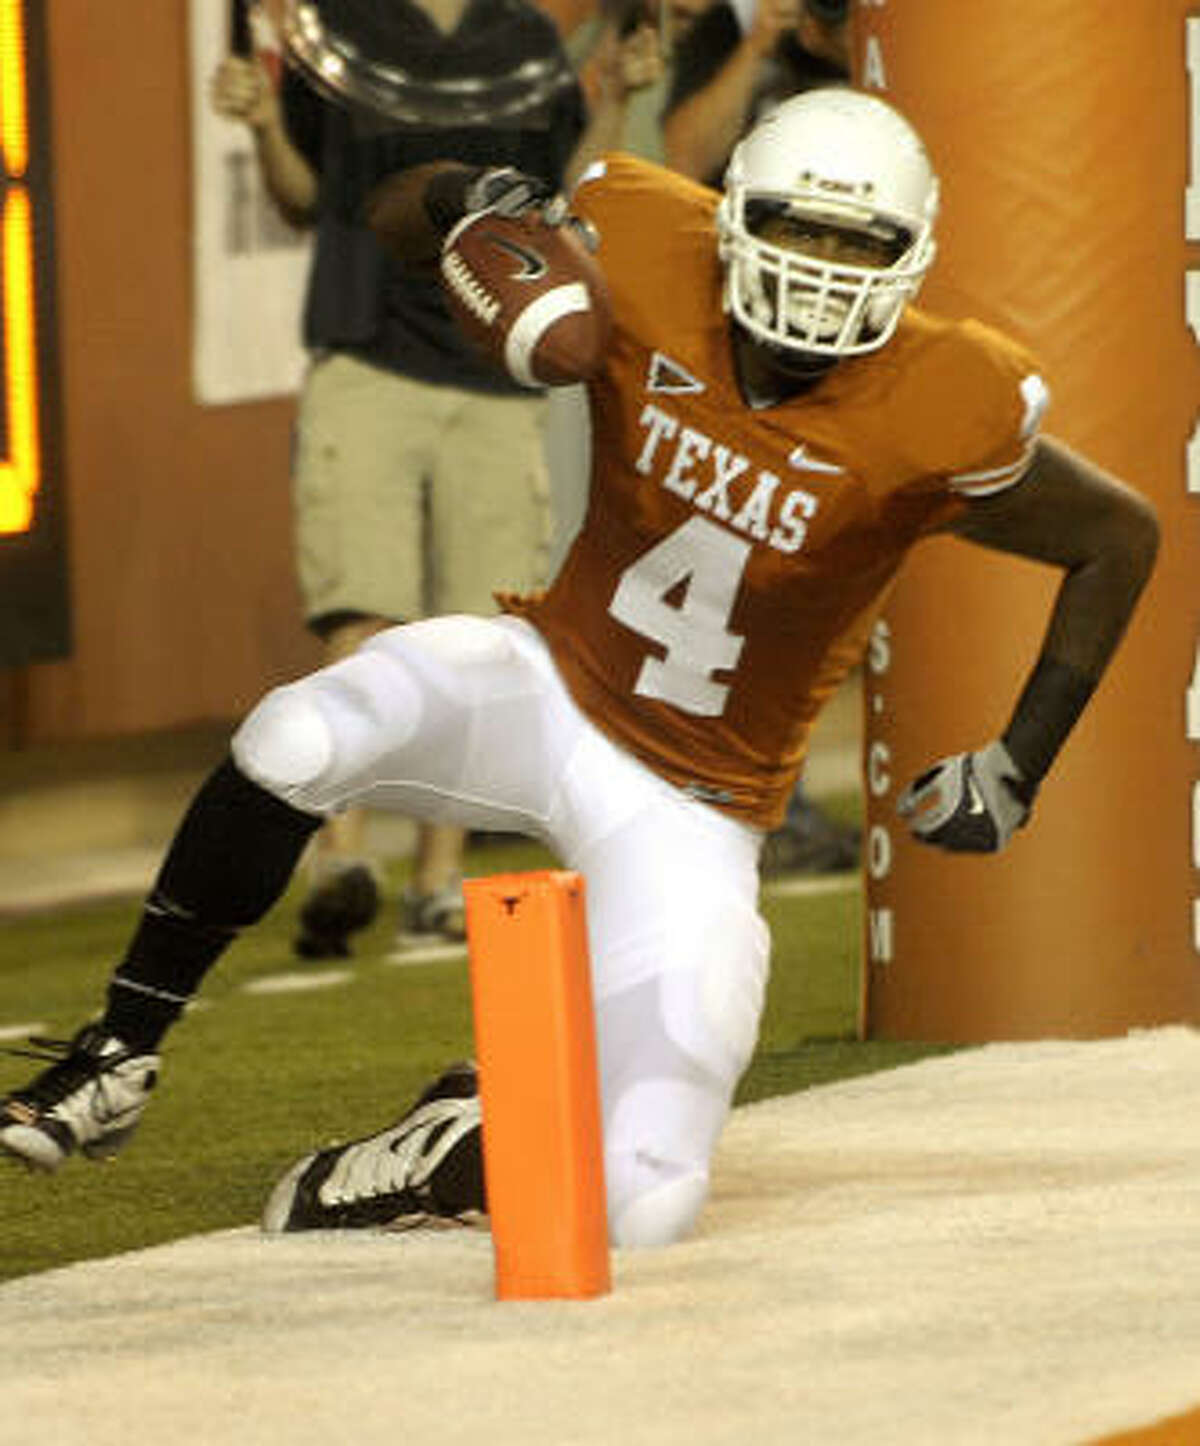 Texas coach Mack Brown said wide receiver Dan Buckner will be released from his scholarship.